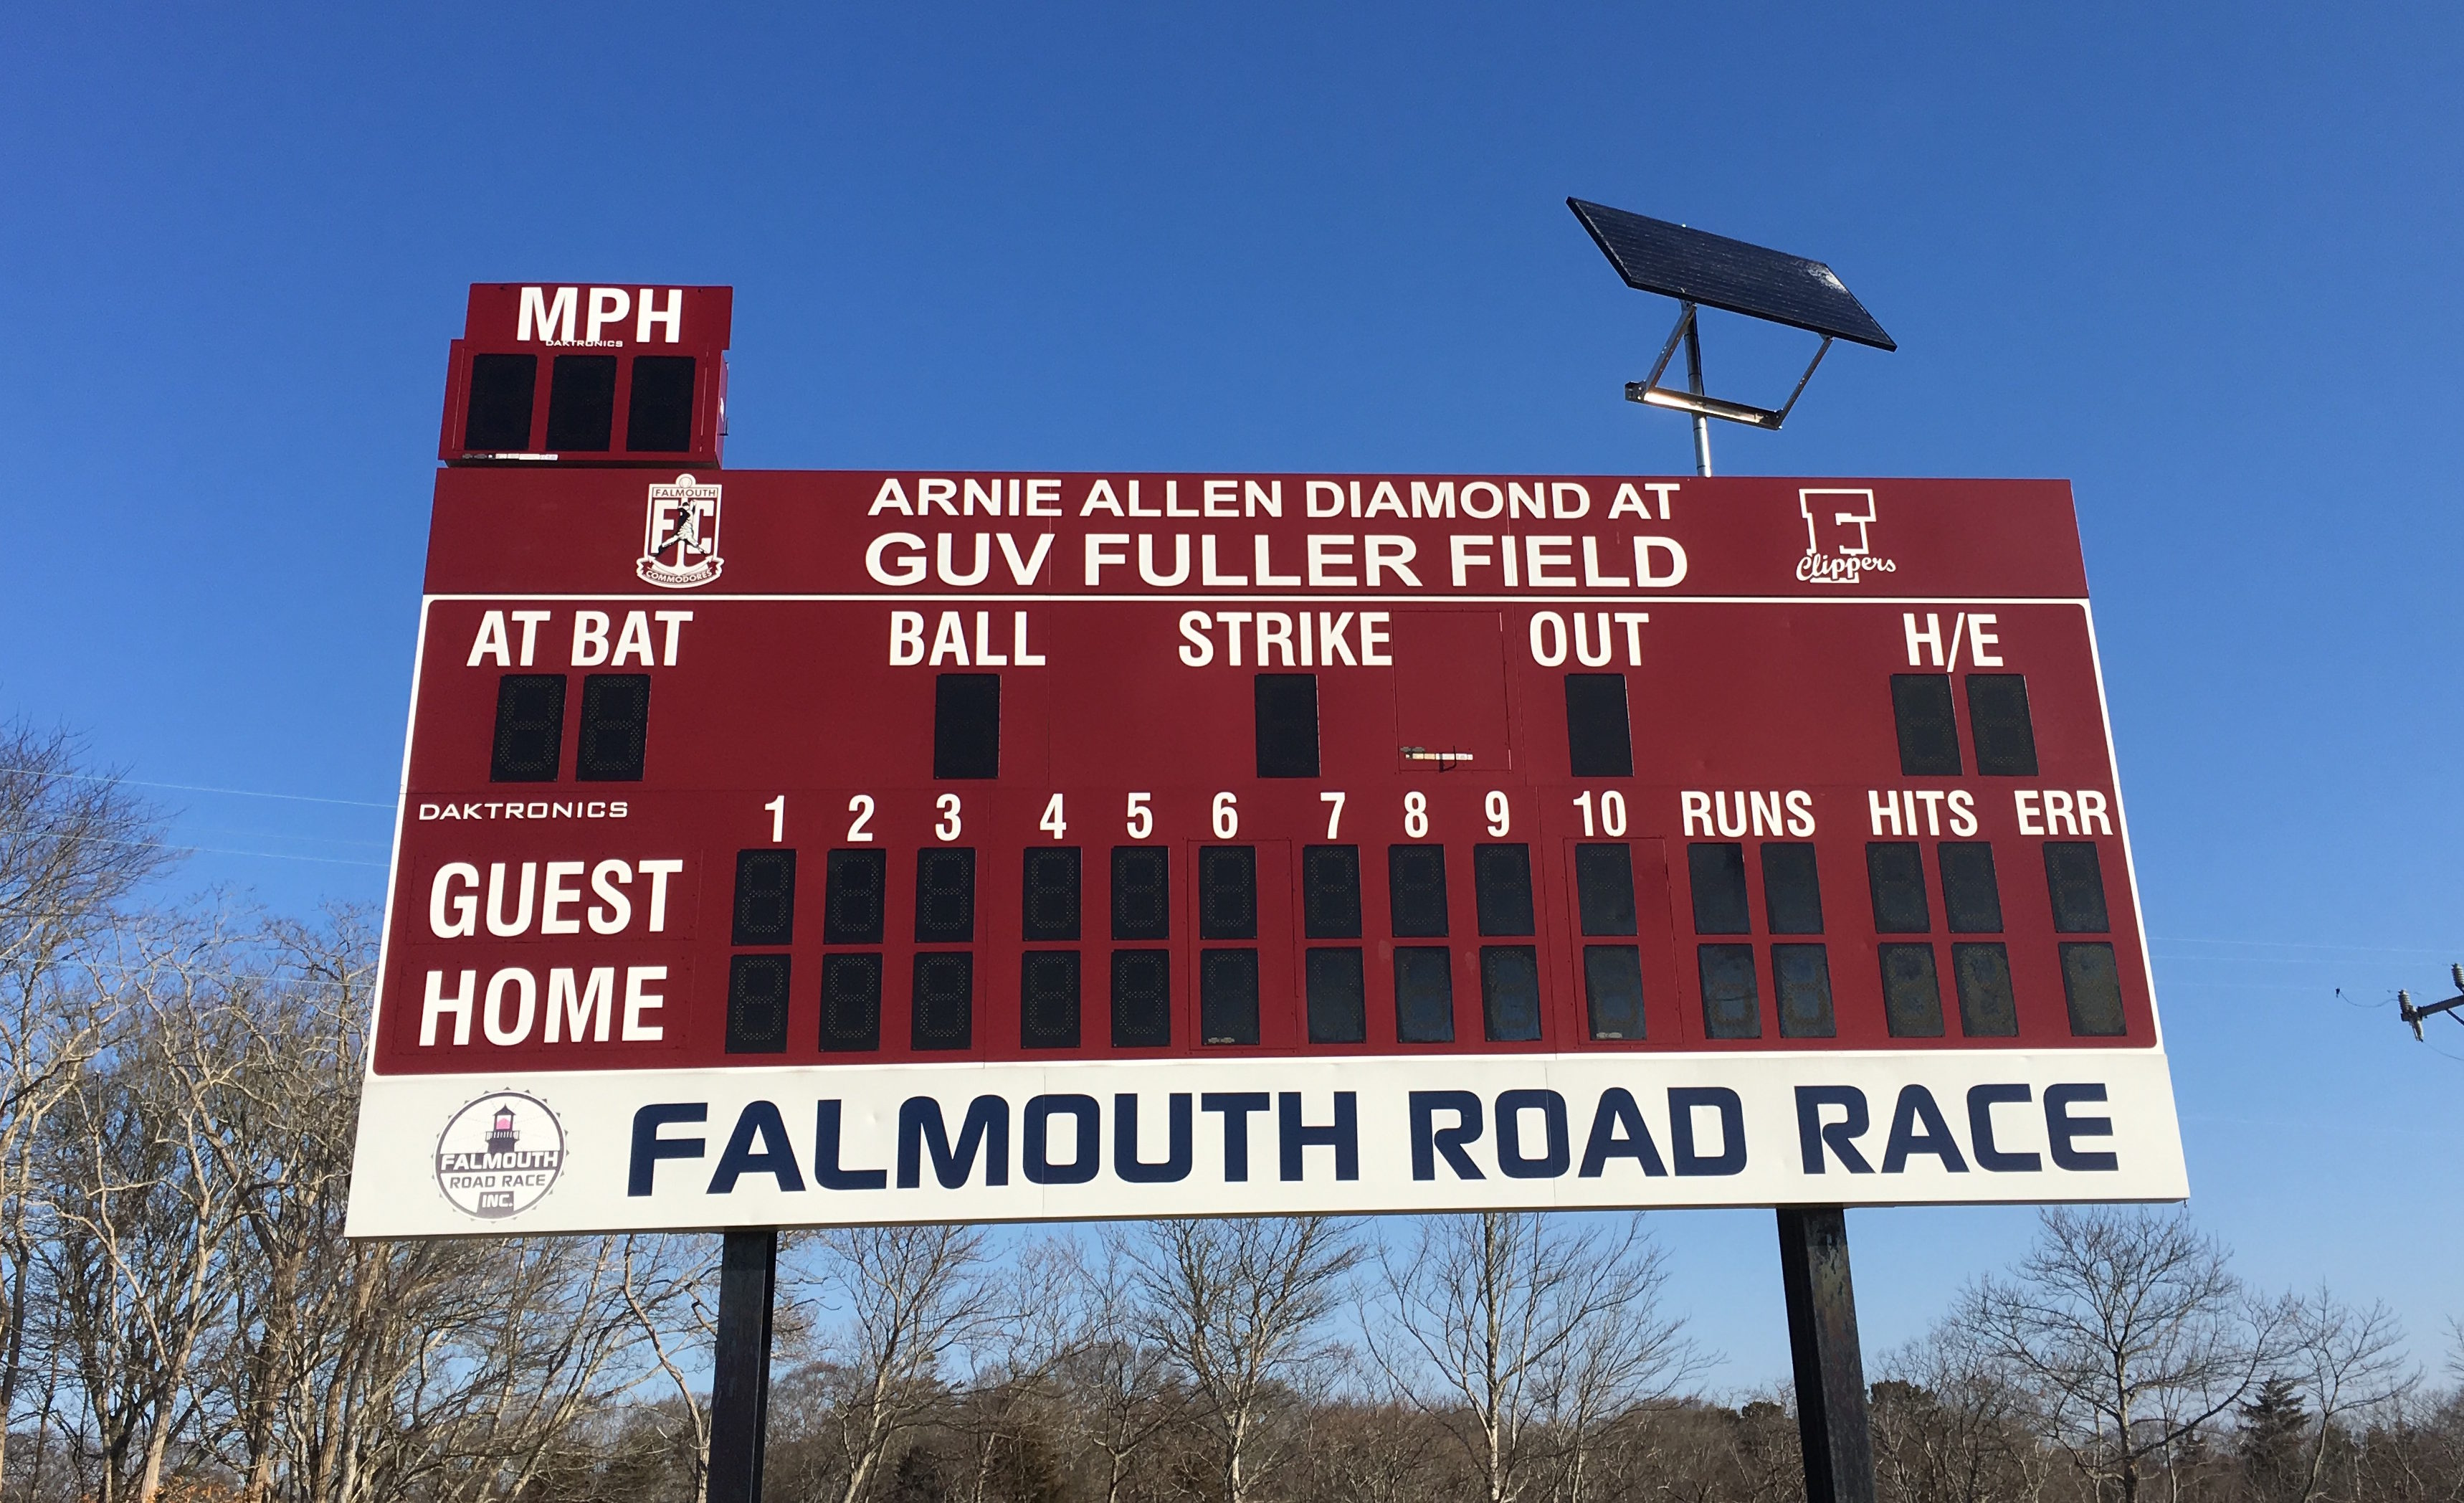 New 3-digit pitch speed panel installed! Thank you CCBL and Falmouth Road Race for your matching grants!